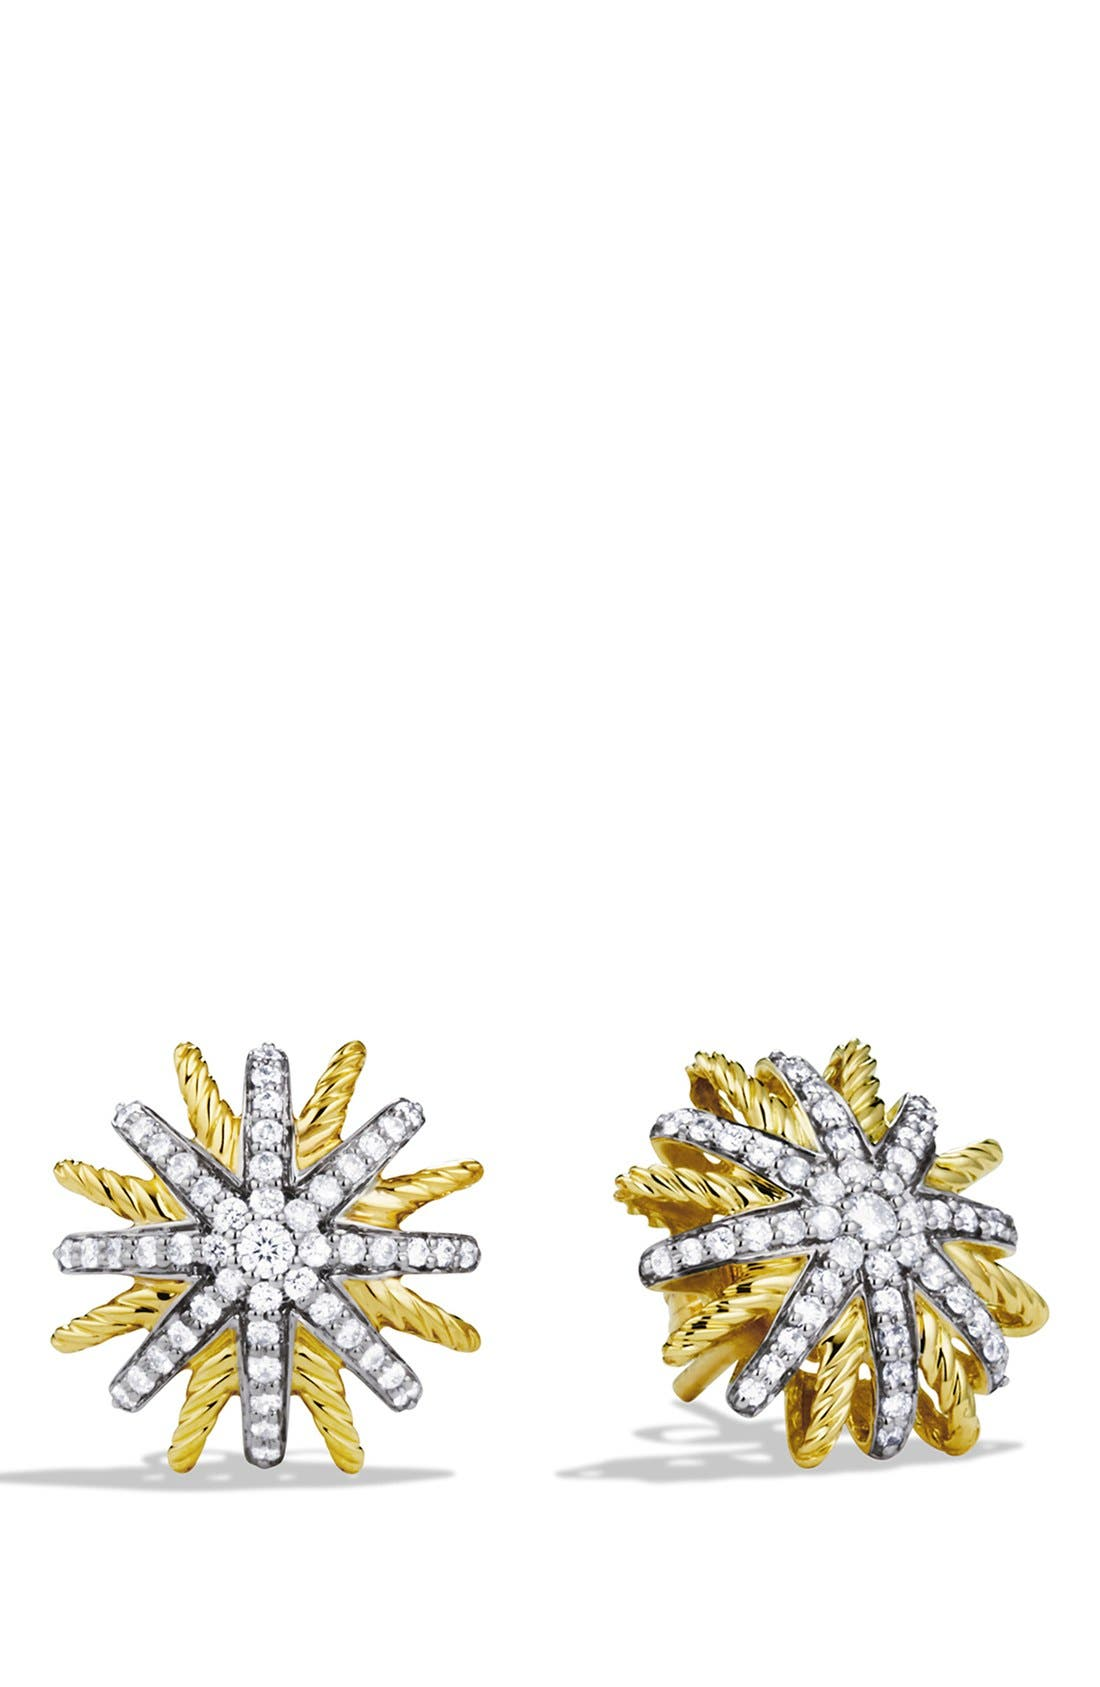 'Starburst' Extra-Small Earrings with Diamonds in Gold,                         Main,                         color, Diamond